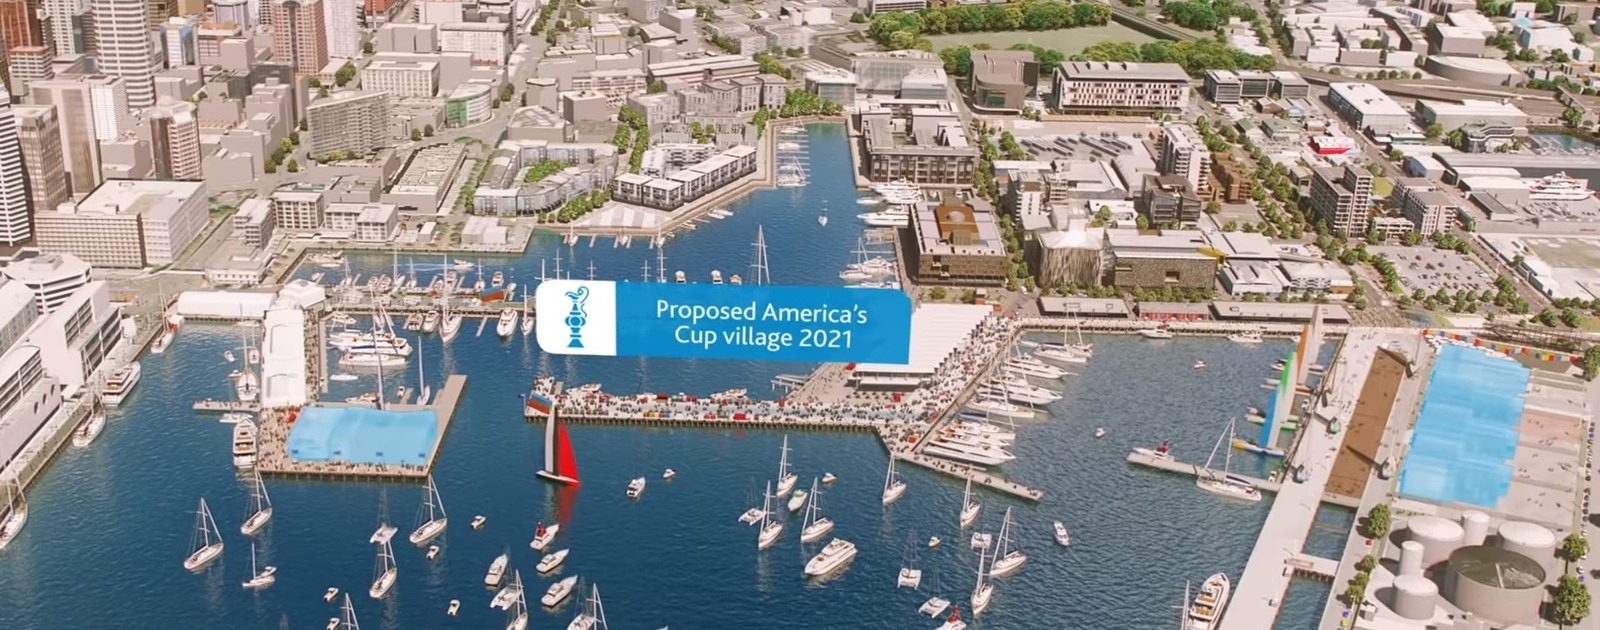 Aerial shot of the proposed new America's Cup floating village 2021 at Viaduct Harbour.